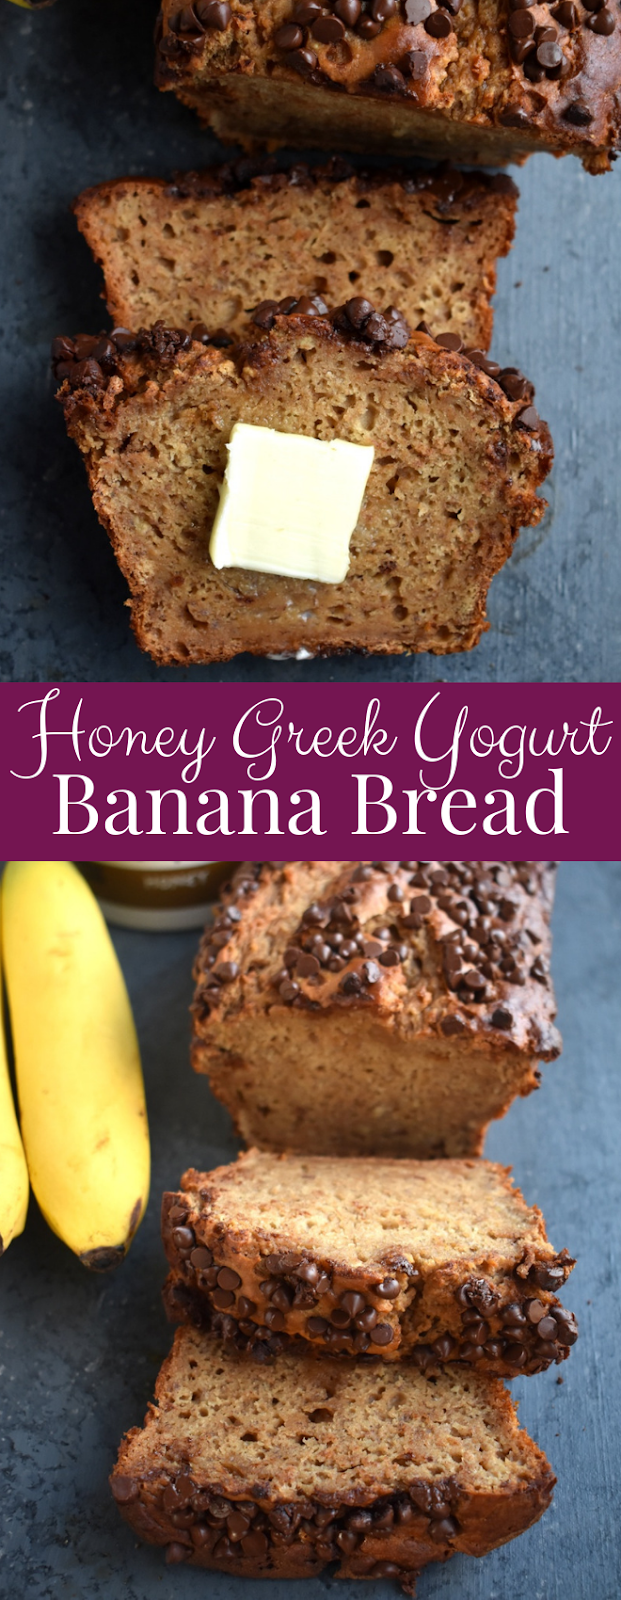 Honey Greek Yogurt Banana Bread -   15 cake Healthy honey ideas